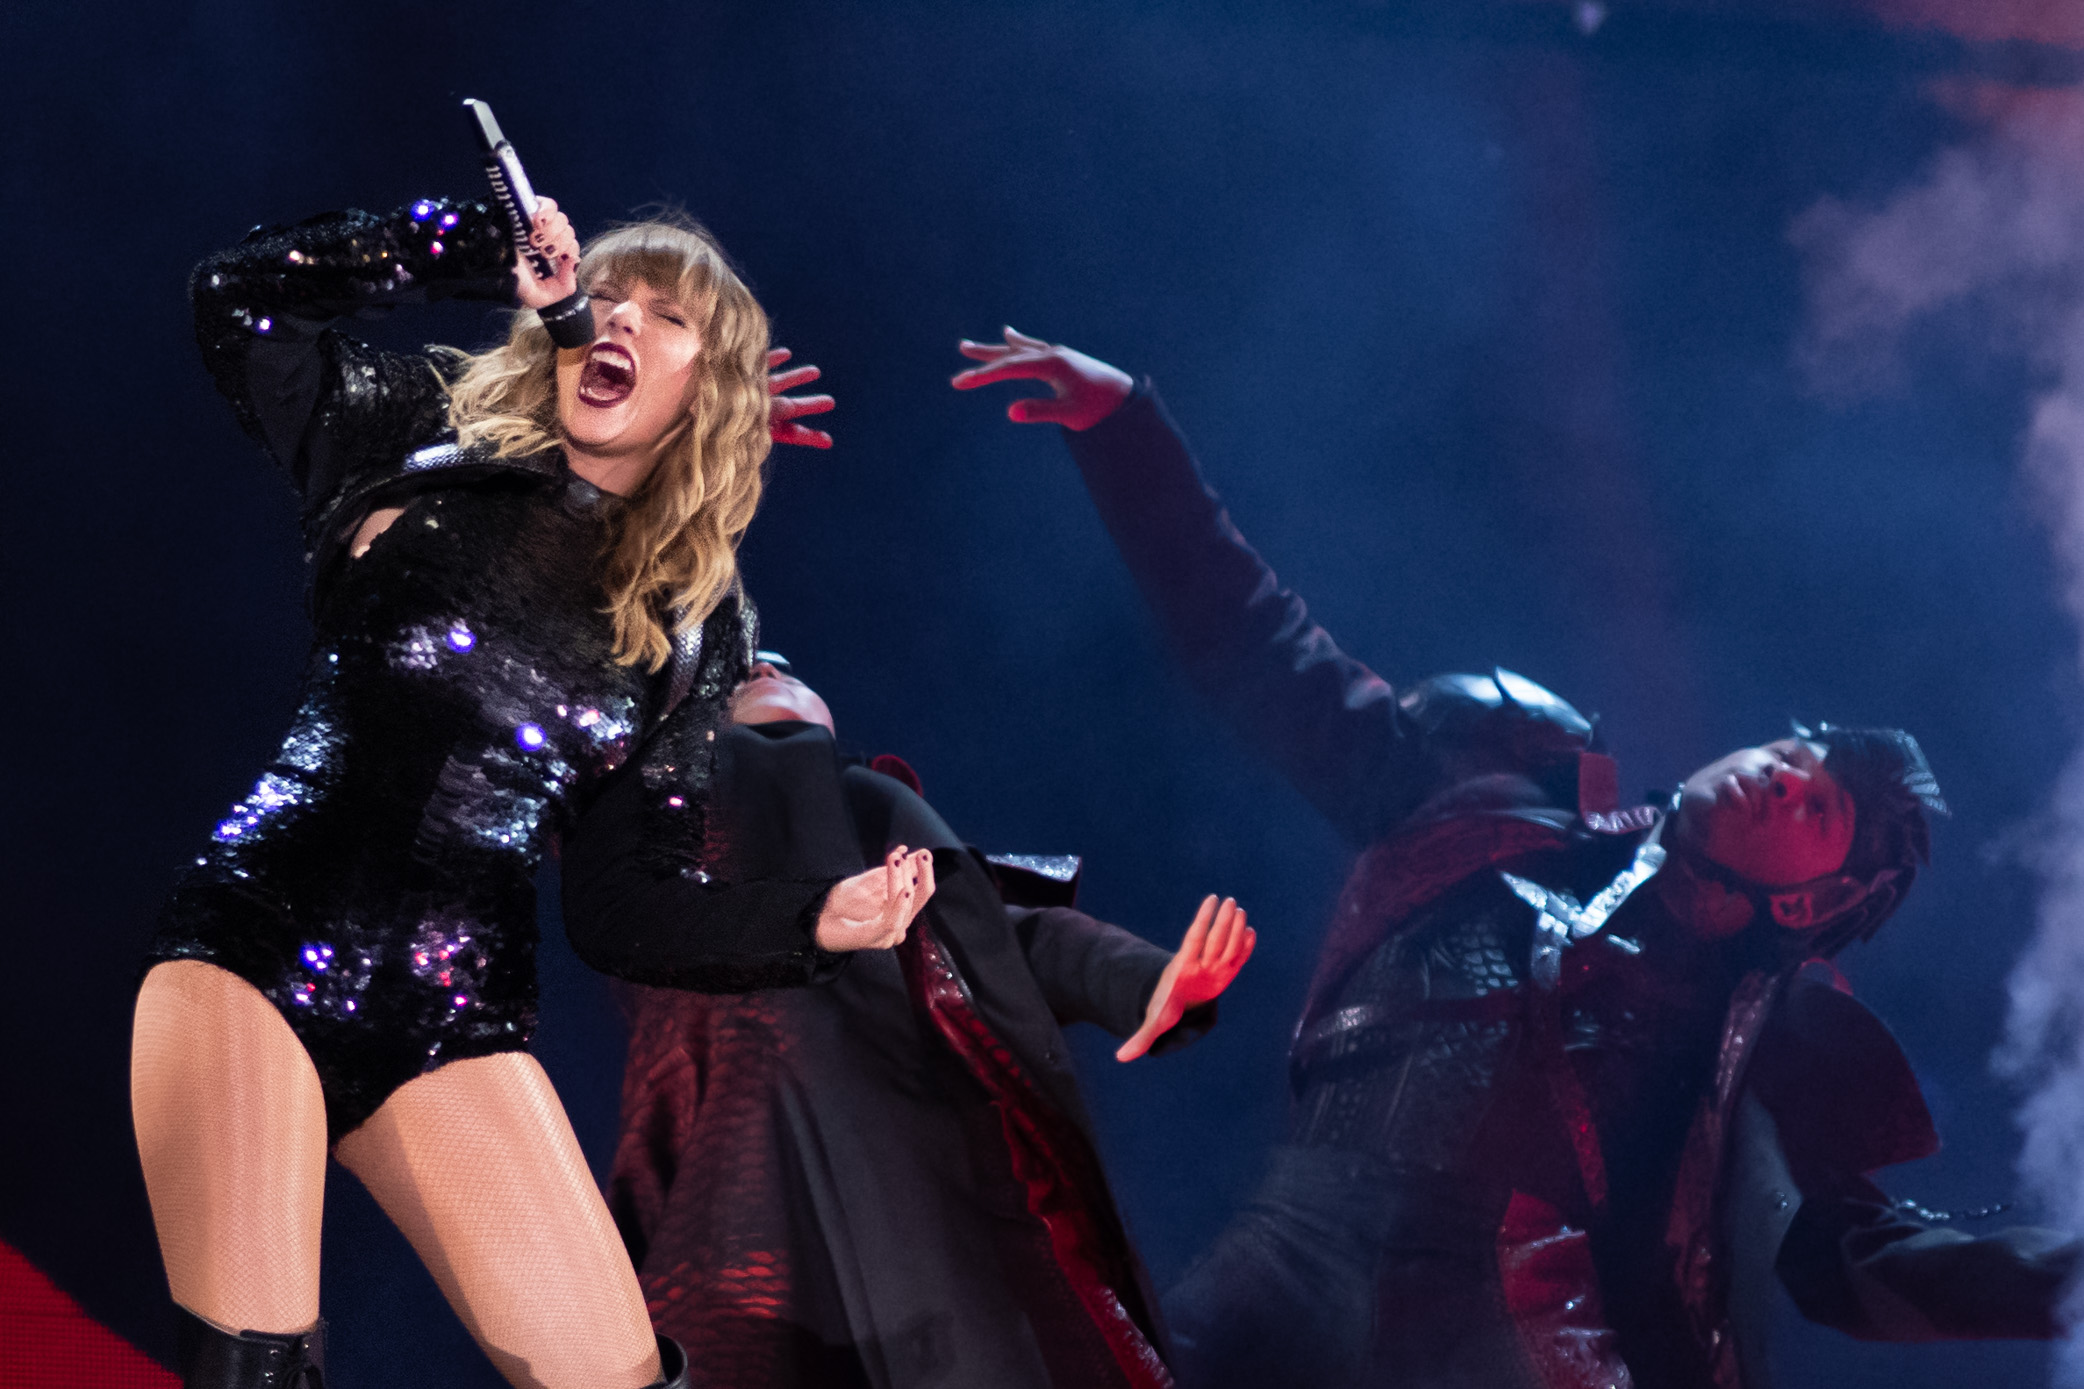 Taylor Swift – May 25th – Sports Authority Field at Mile High